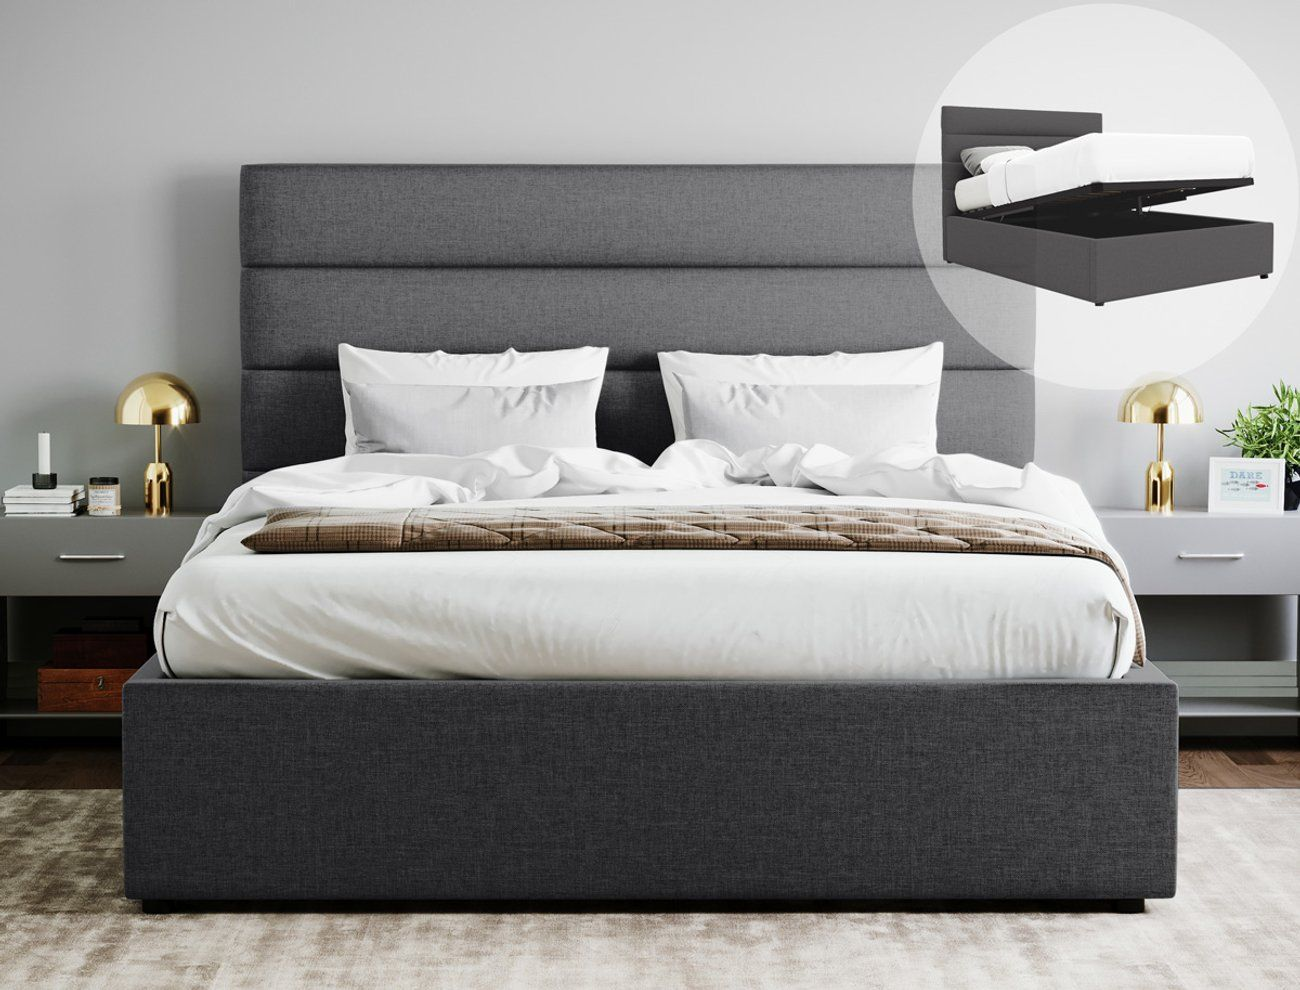 Queen Size Gas Lift Fabric Bed Frame Benny Collection Charcoal Fabric Bed Frame Lift Storage Bed Bed Frame With Storage